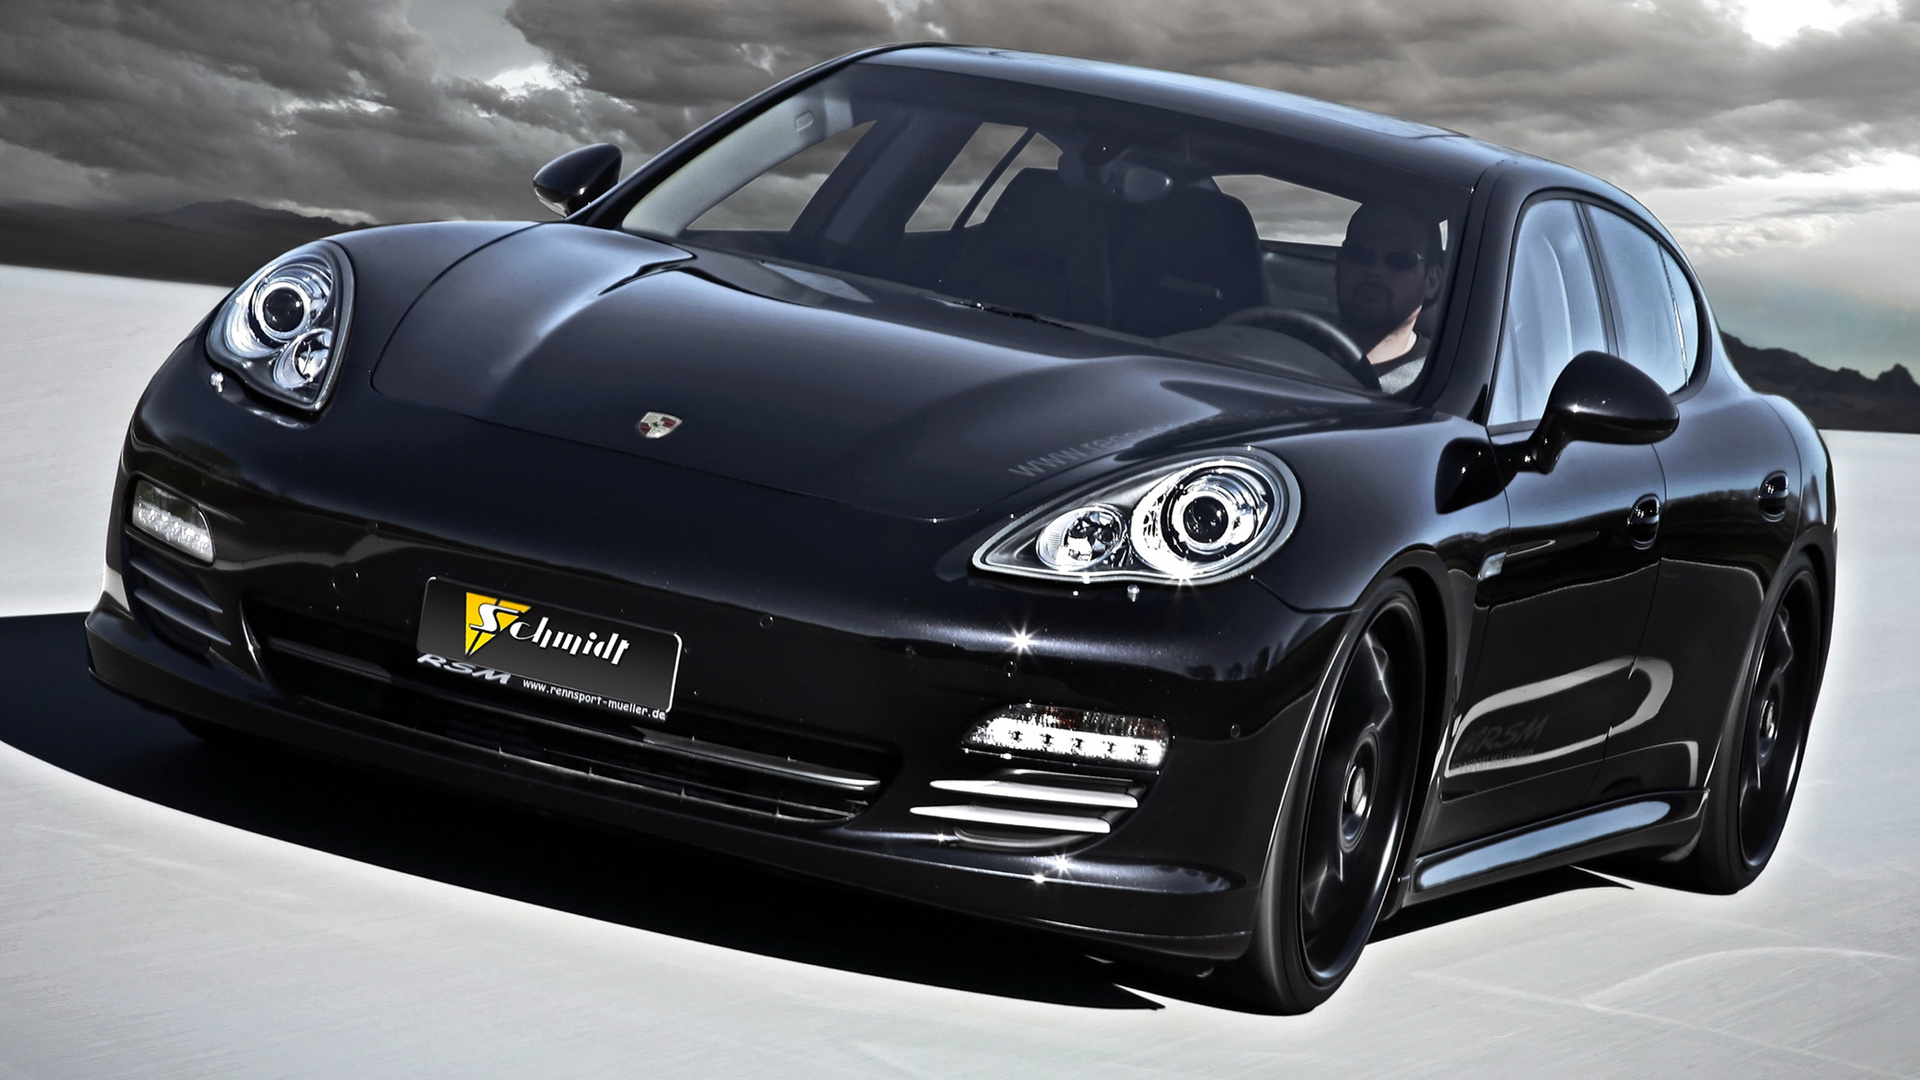 Wonderful Porsche Panamera Wallpapers Full Hd Pictures